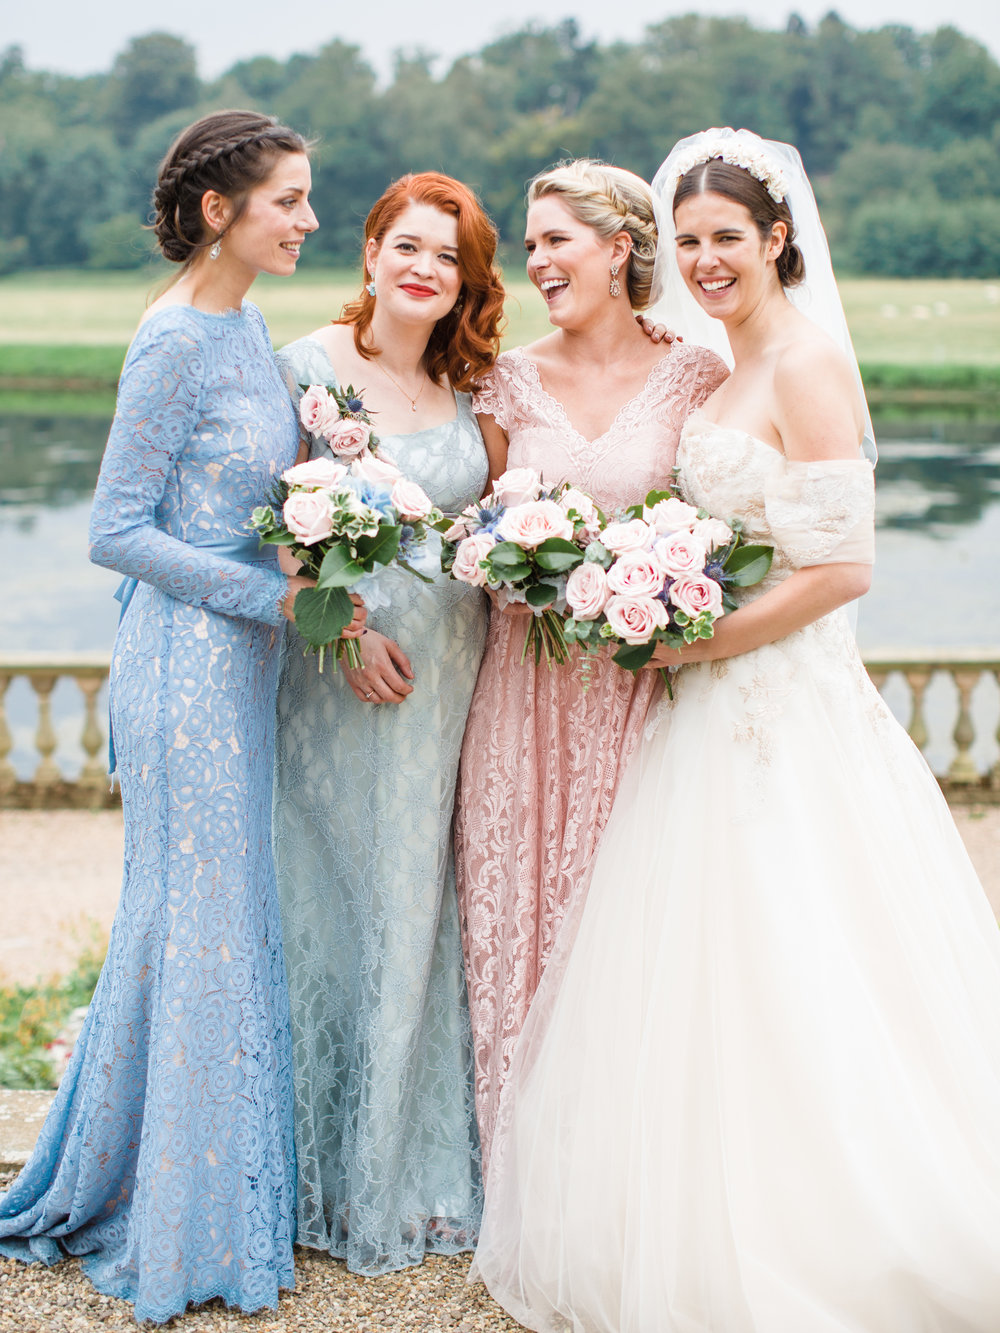 Co-Founder Louie's Wedding at Stoneleigh Abbey - Photo:  Amy O'Boyle